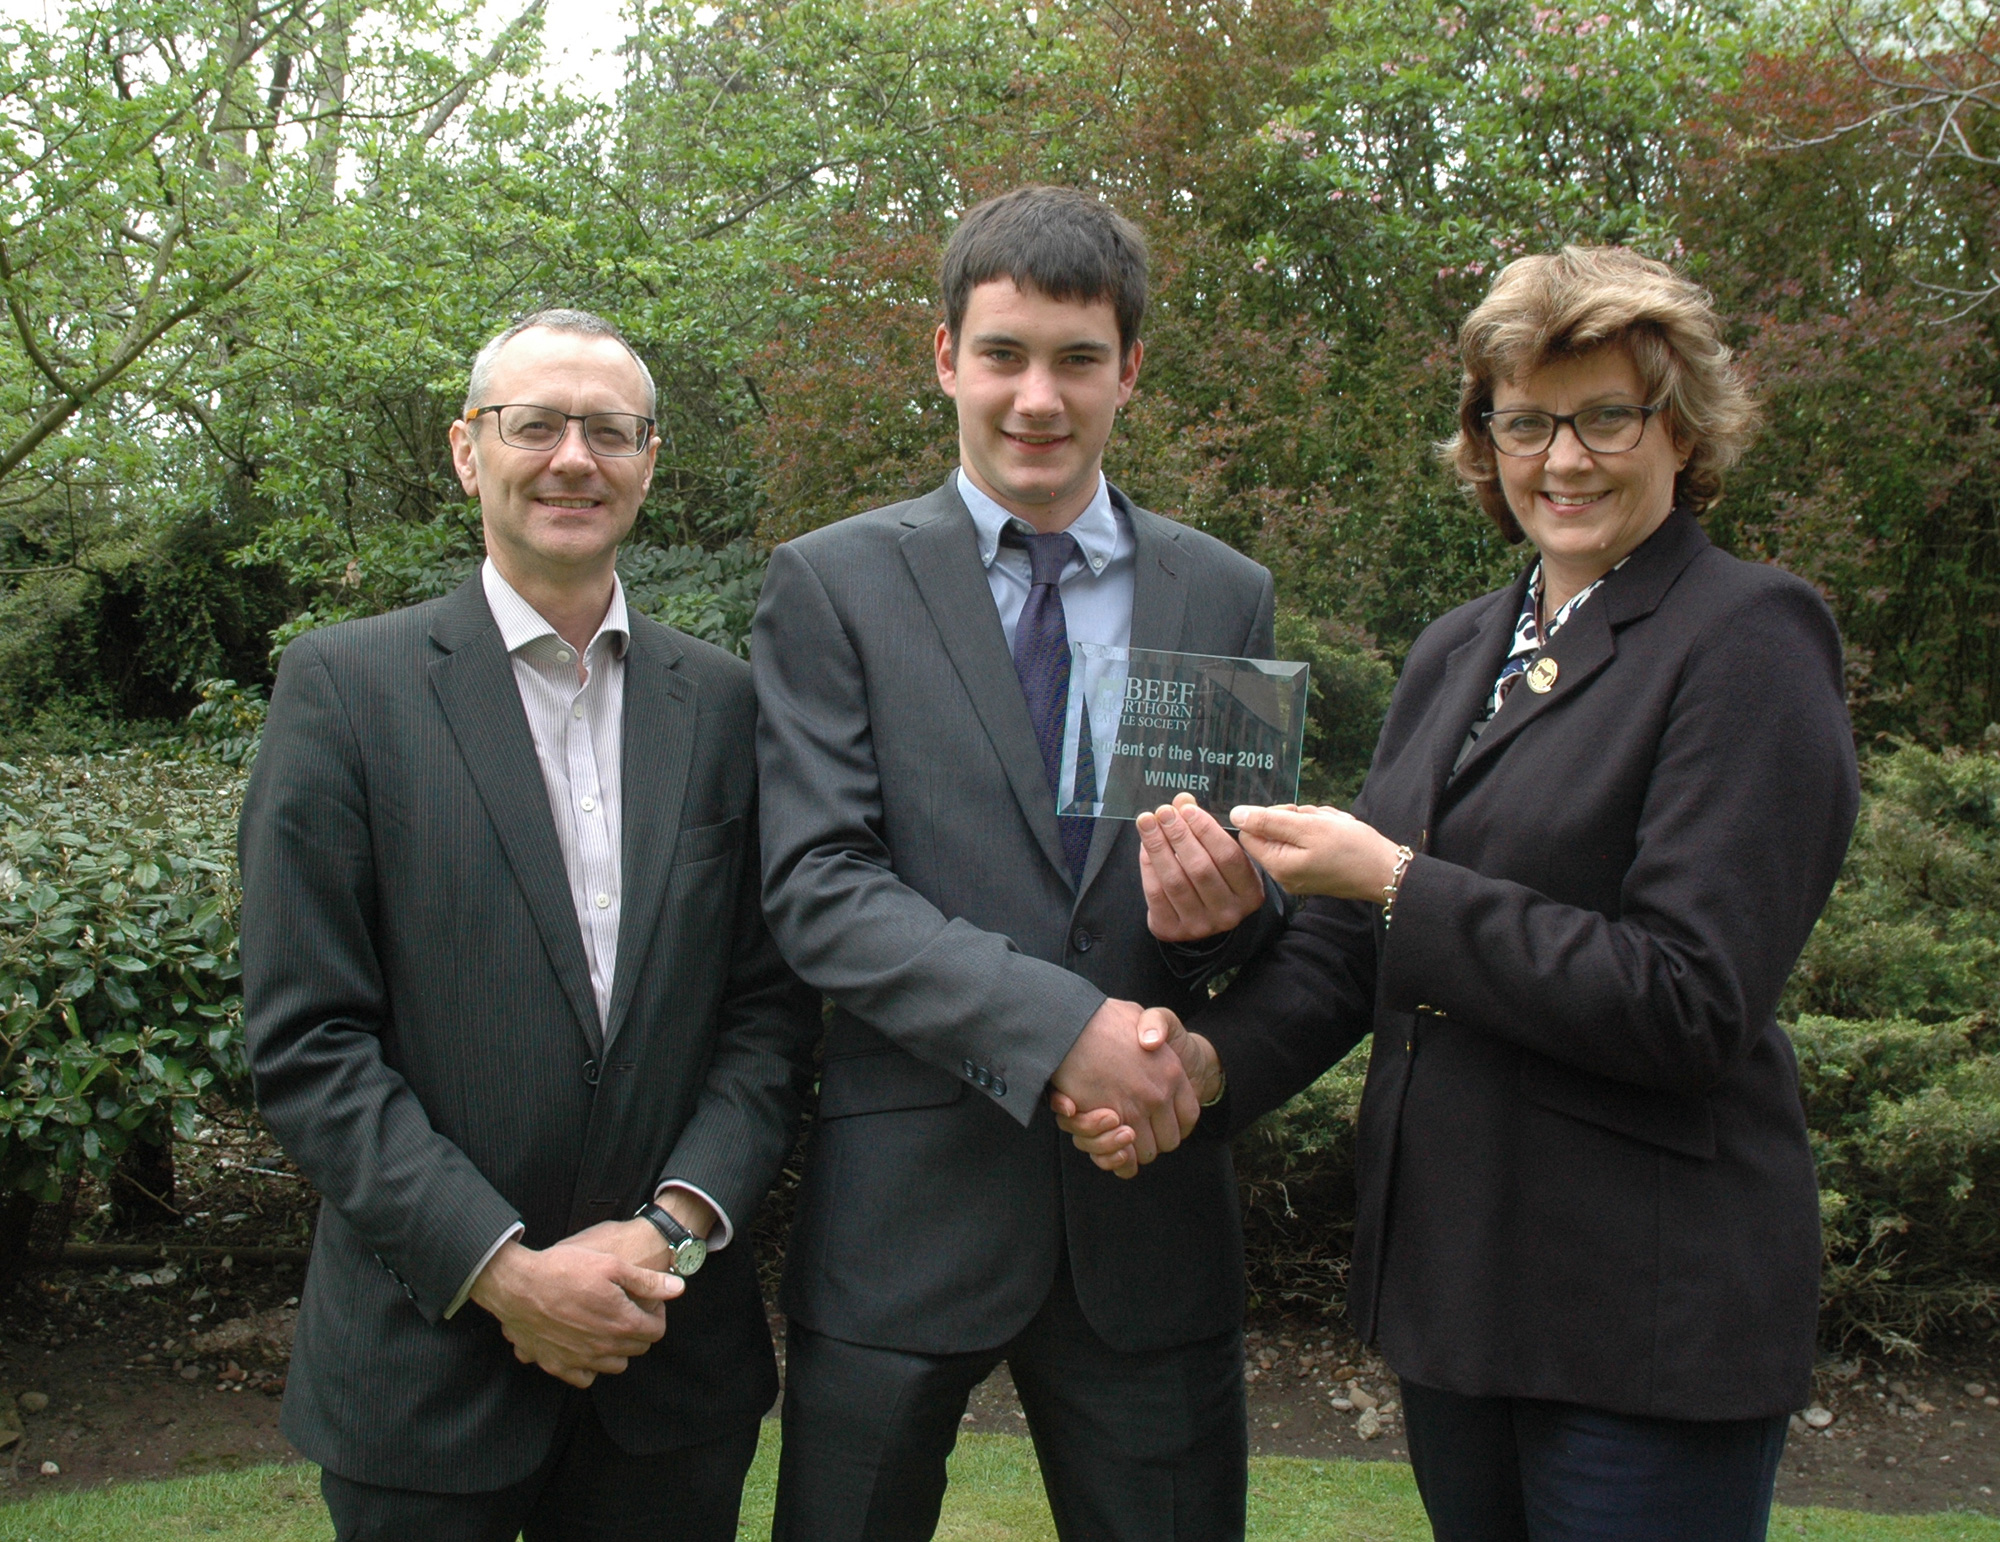 Beef Student of the Year, Henry Scholefield receives his award from Beef Shorthorn Cattle Society president, Sally Horrell, with Course Tutor, Prof Paul Wilson